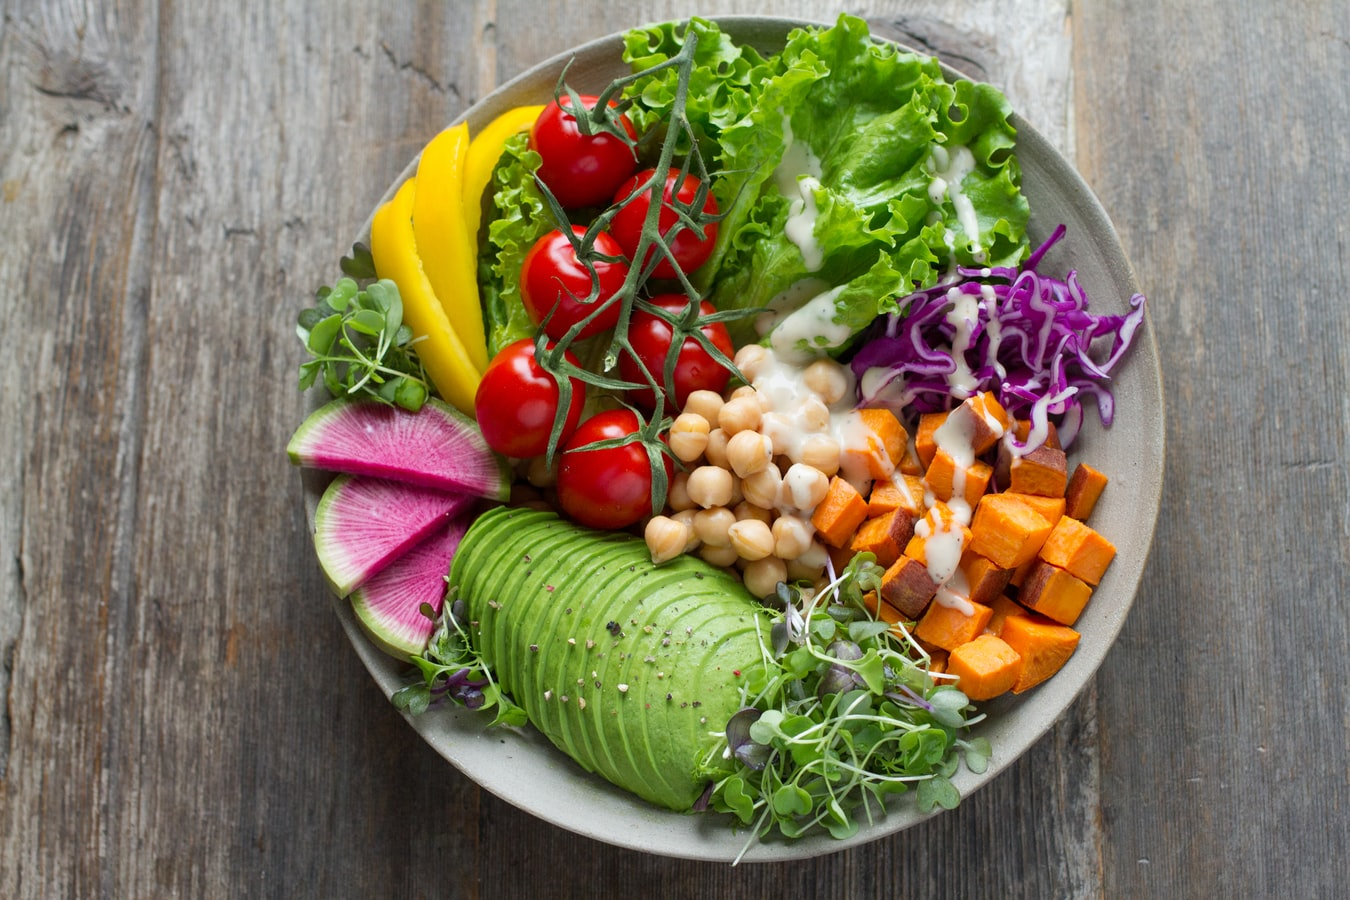 A bowl of vegetables. Eating healthy foods can help boost the immune system.